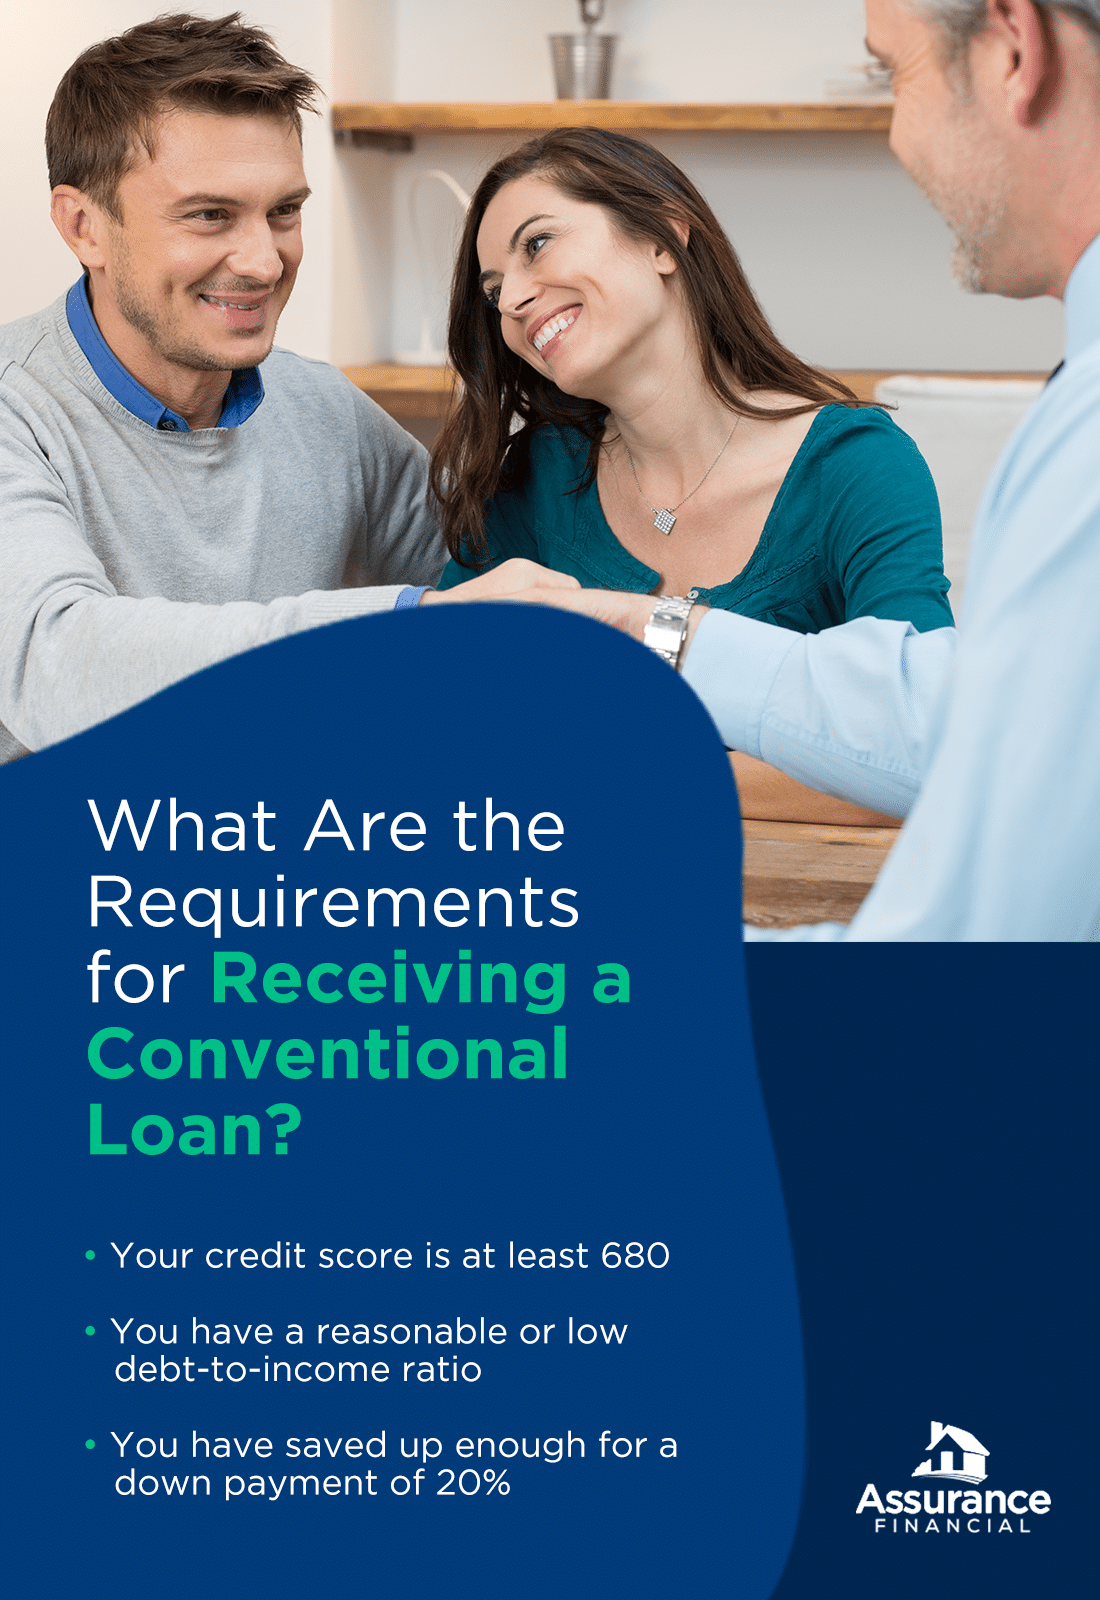 Conventional loan requirements